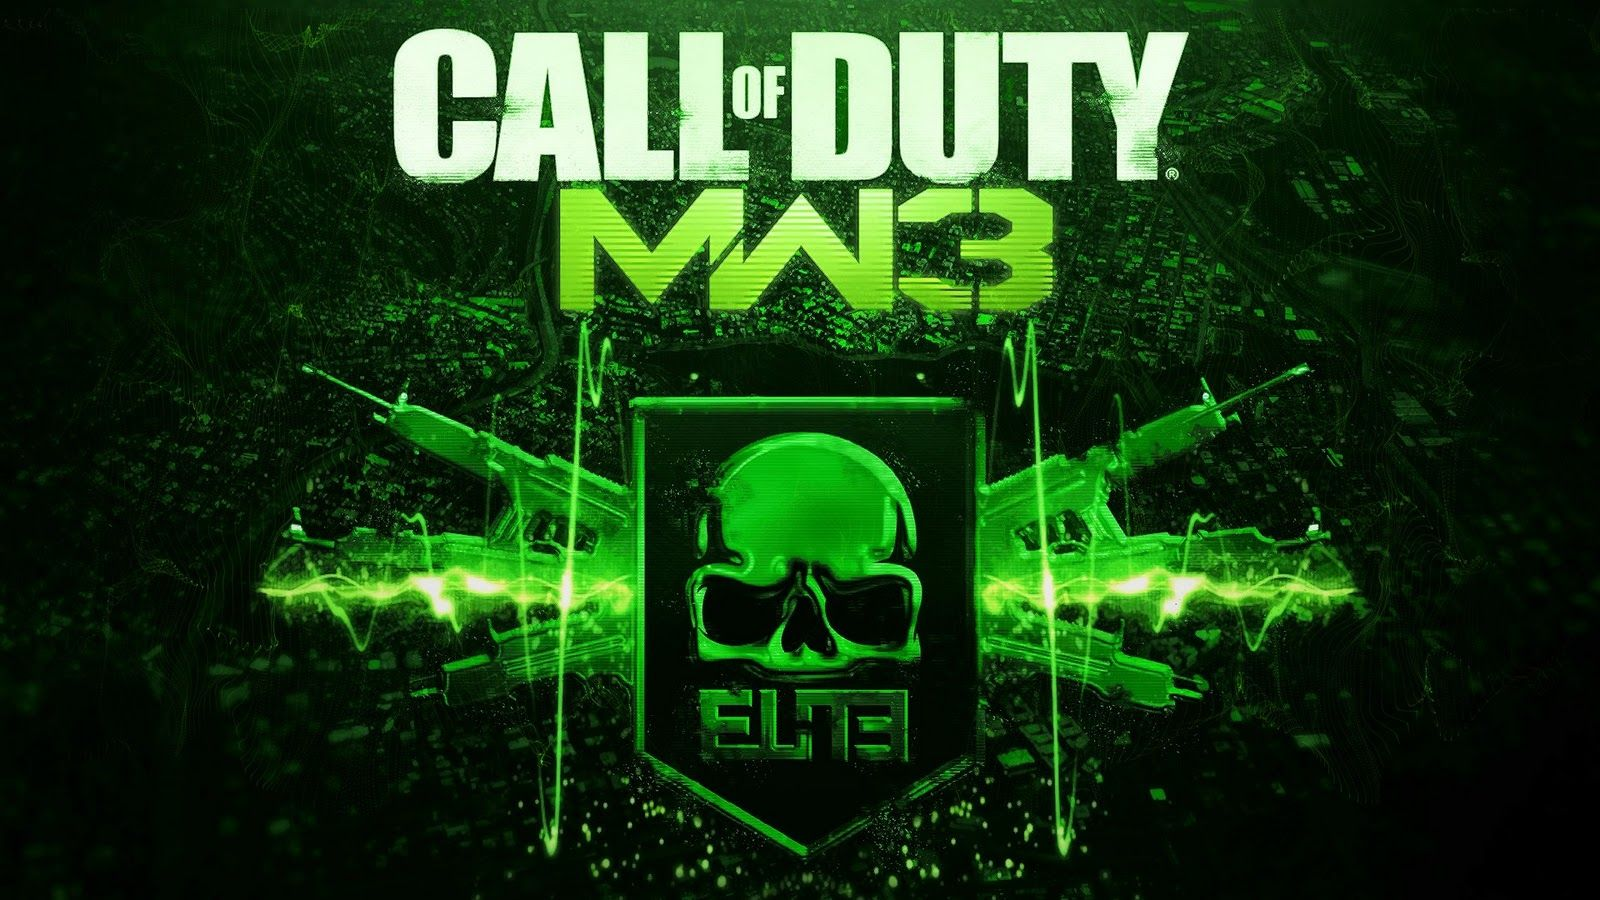 Call Of Duty Mw3 Wallpaper Games Wallpapers Modern Wallpaper Wallpaper Animated Wallpaper